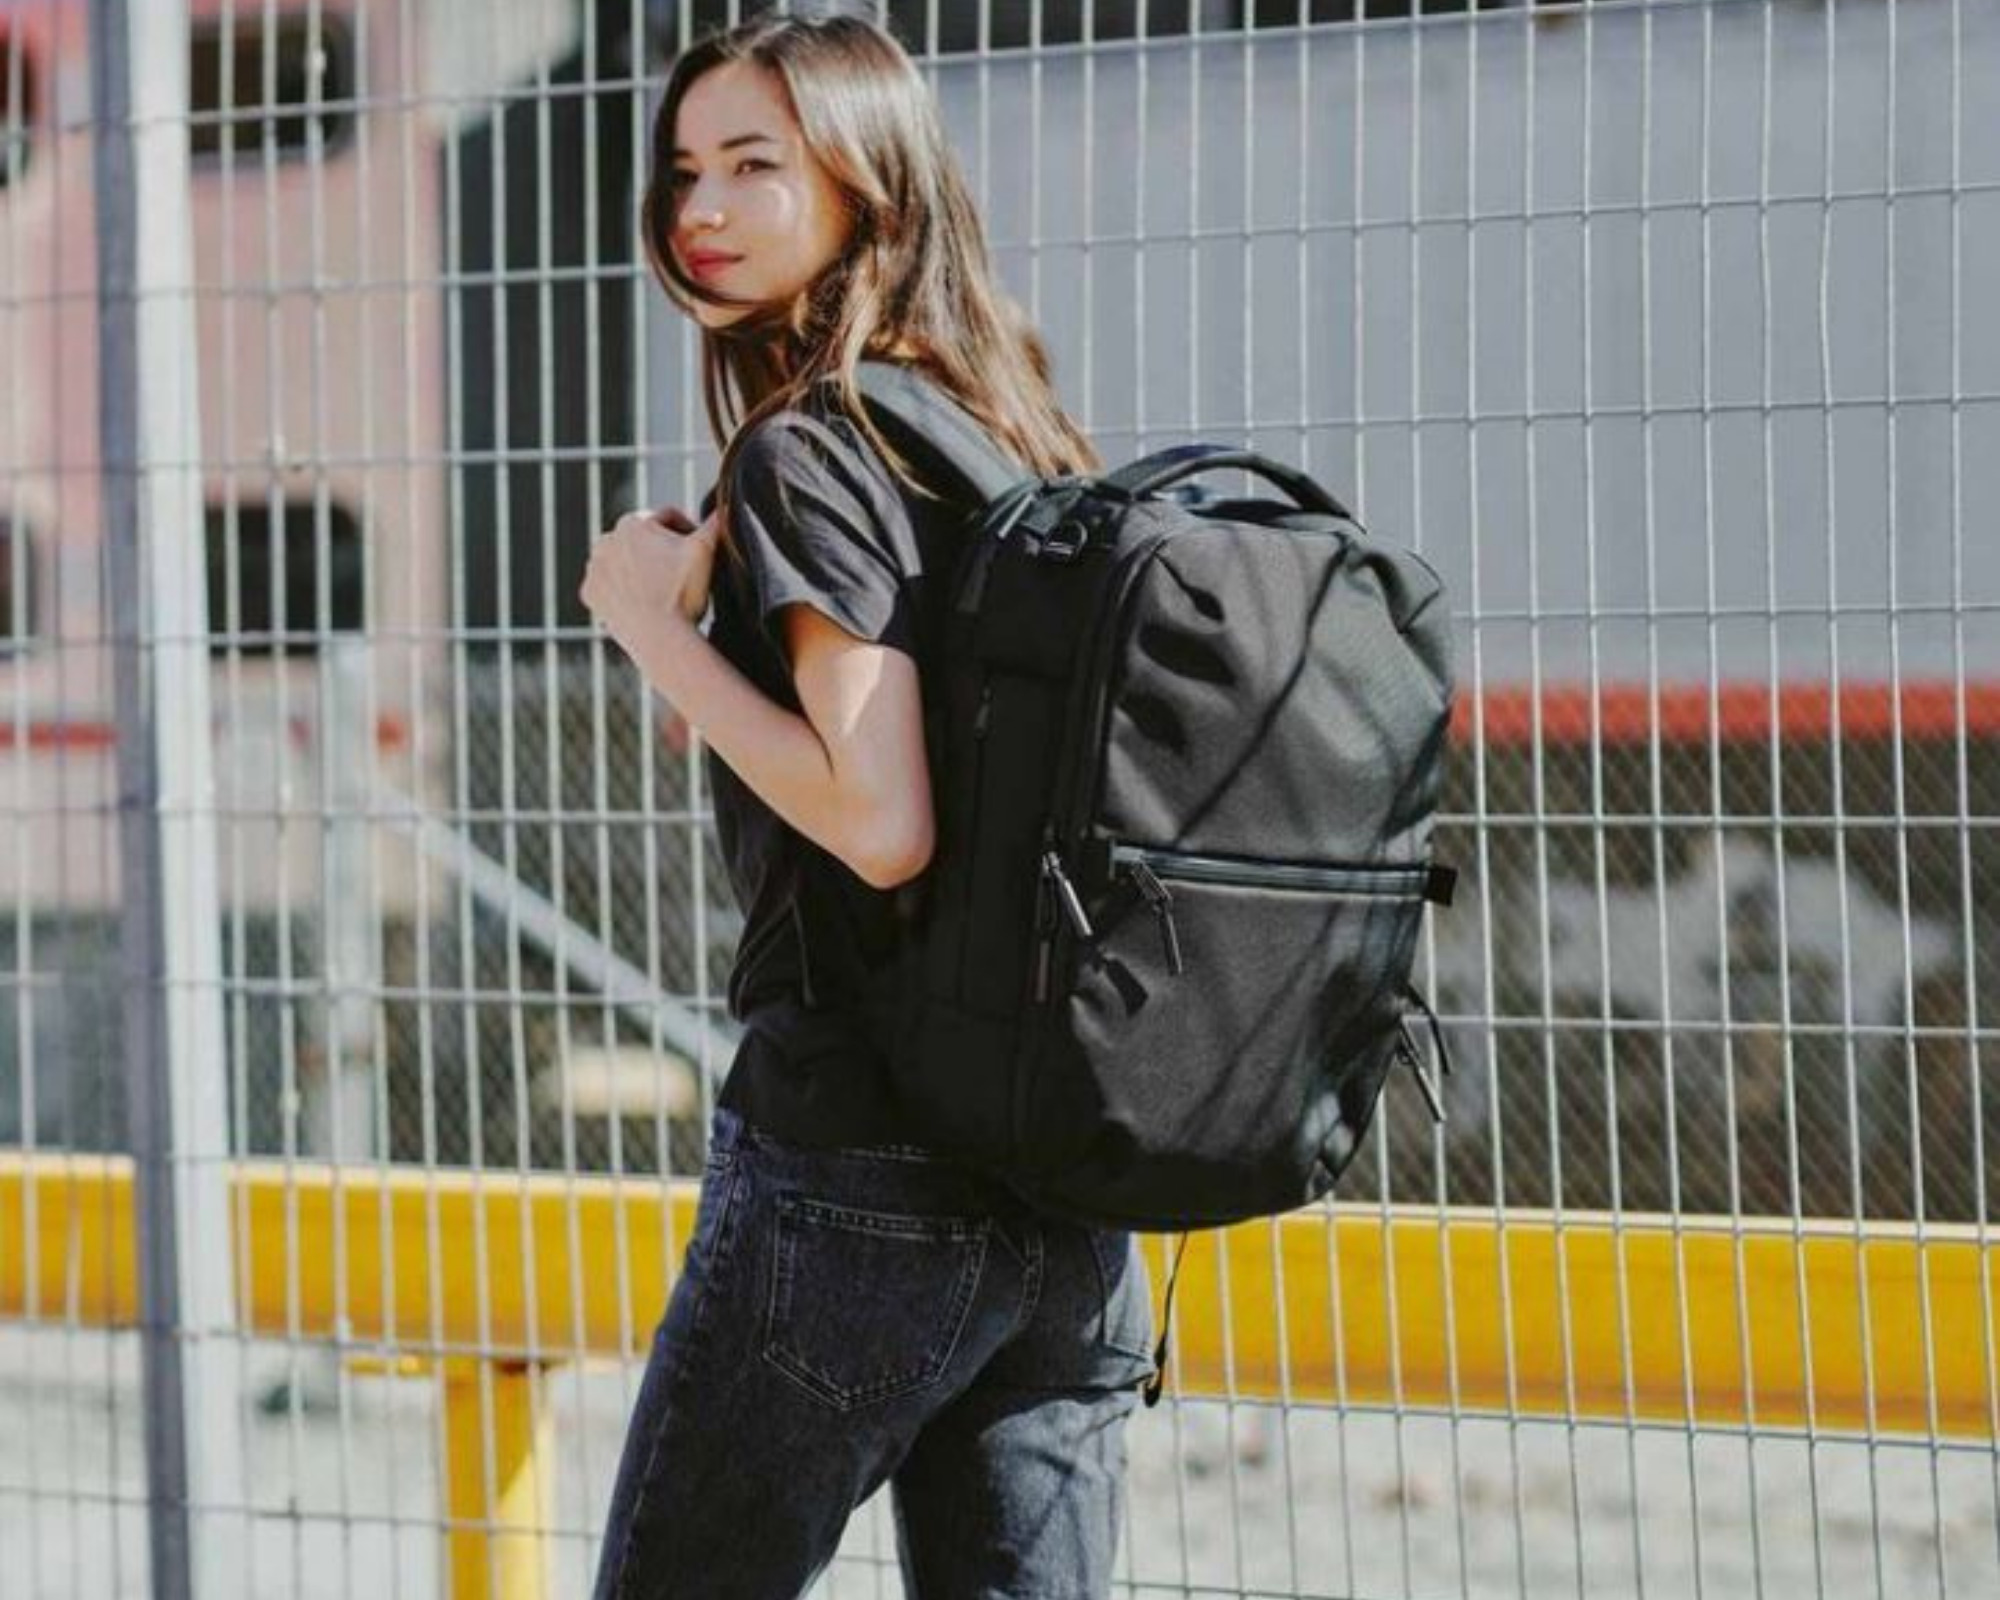 AER Travel Pack 2 review: A female model carrying the AER Travel pack 2